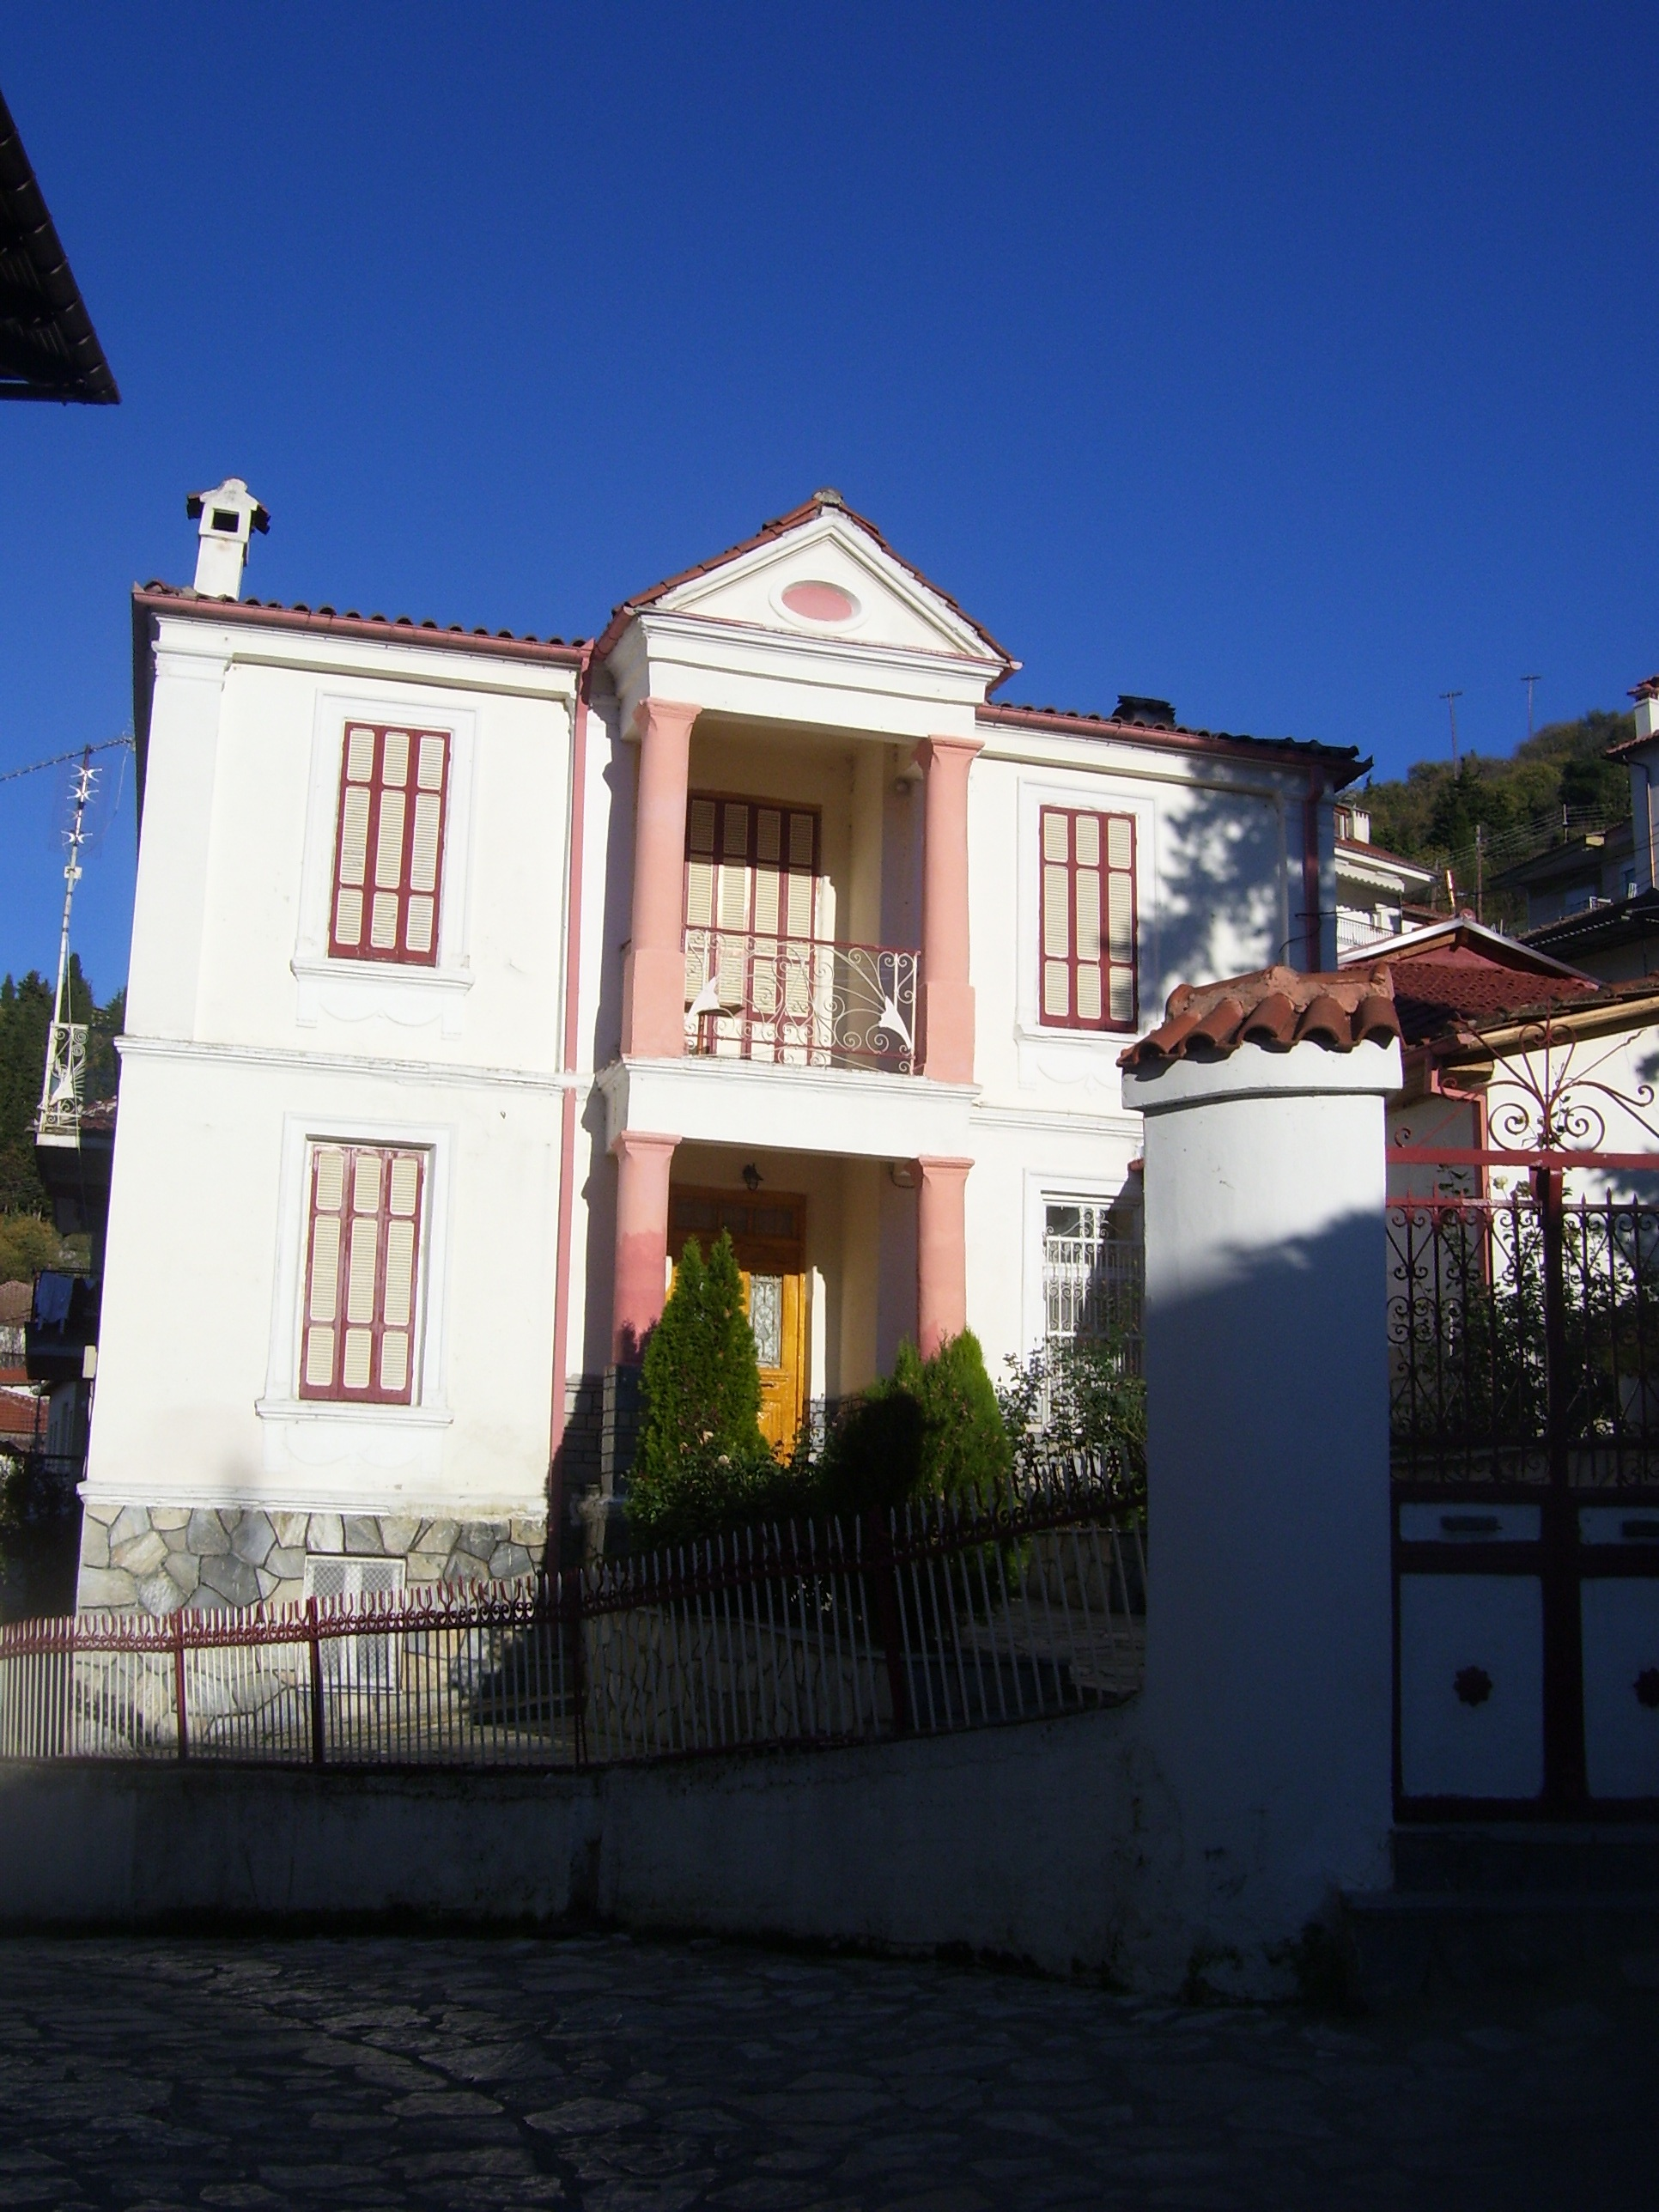 file:traditional house in kostur, kastoria, greece - wikimedia